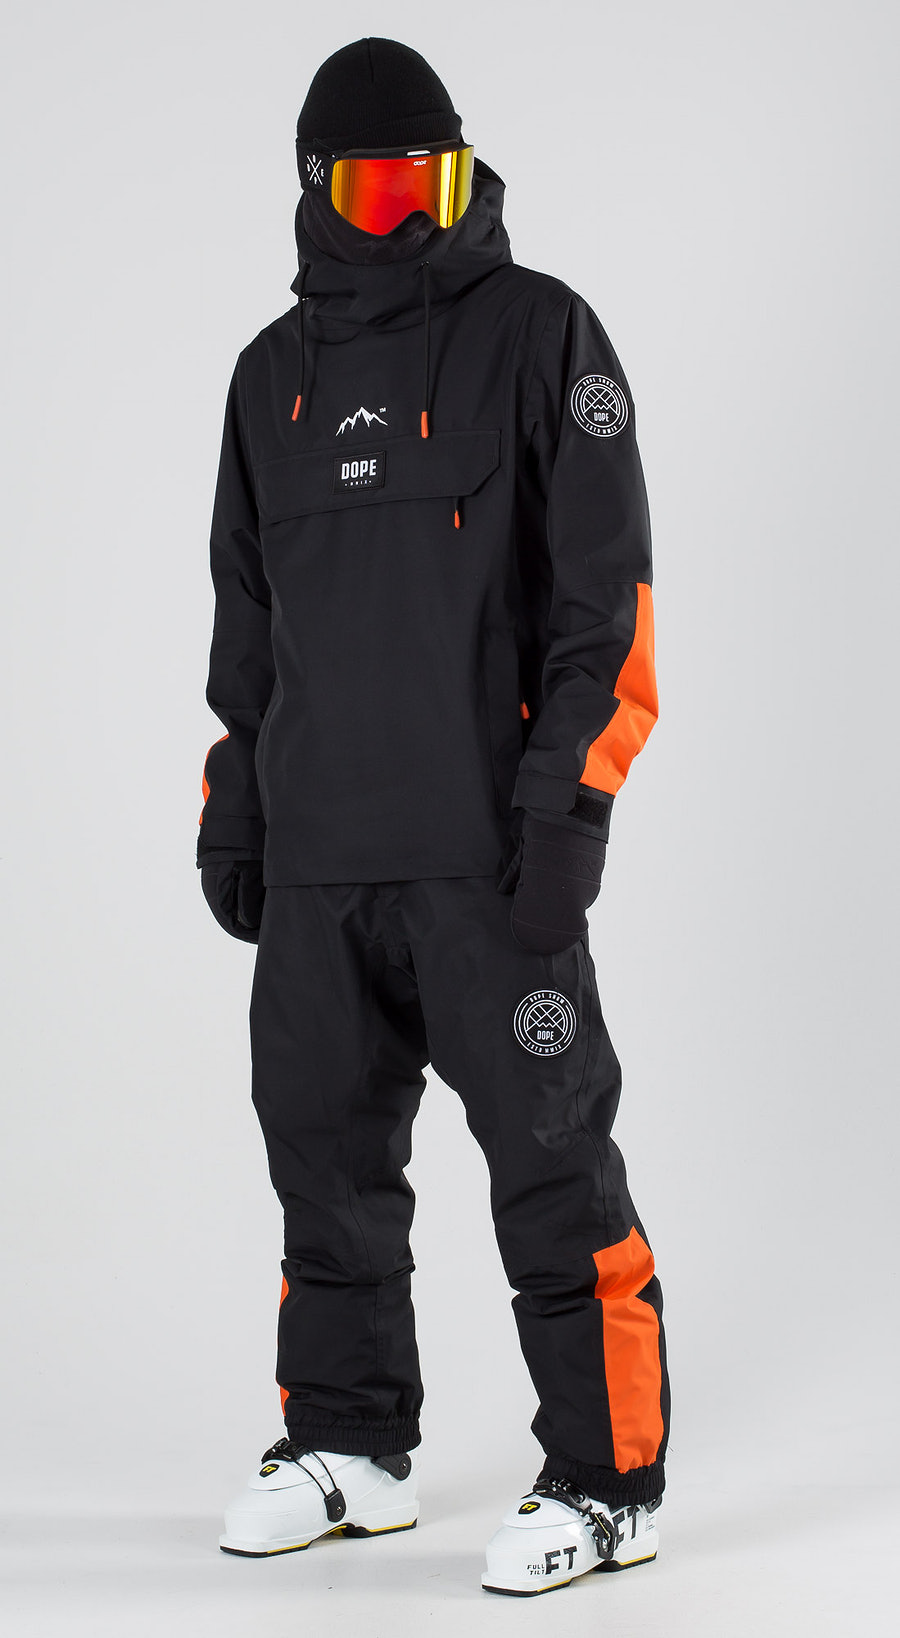 Dope Blizzard LE Black Orange Ski clothing Multi